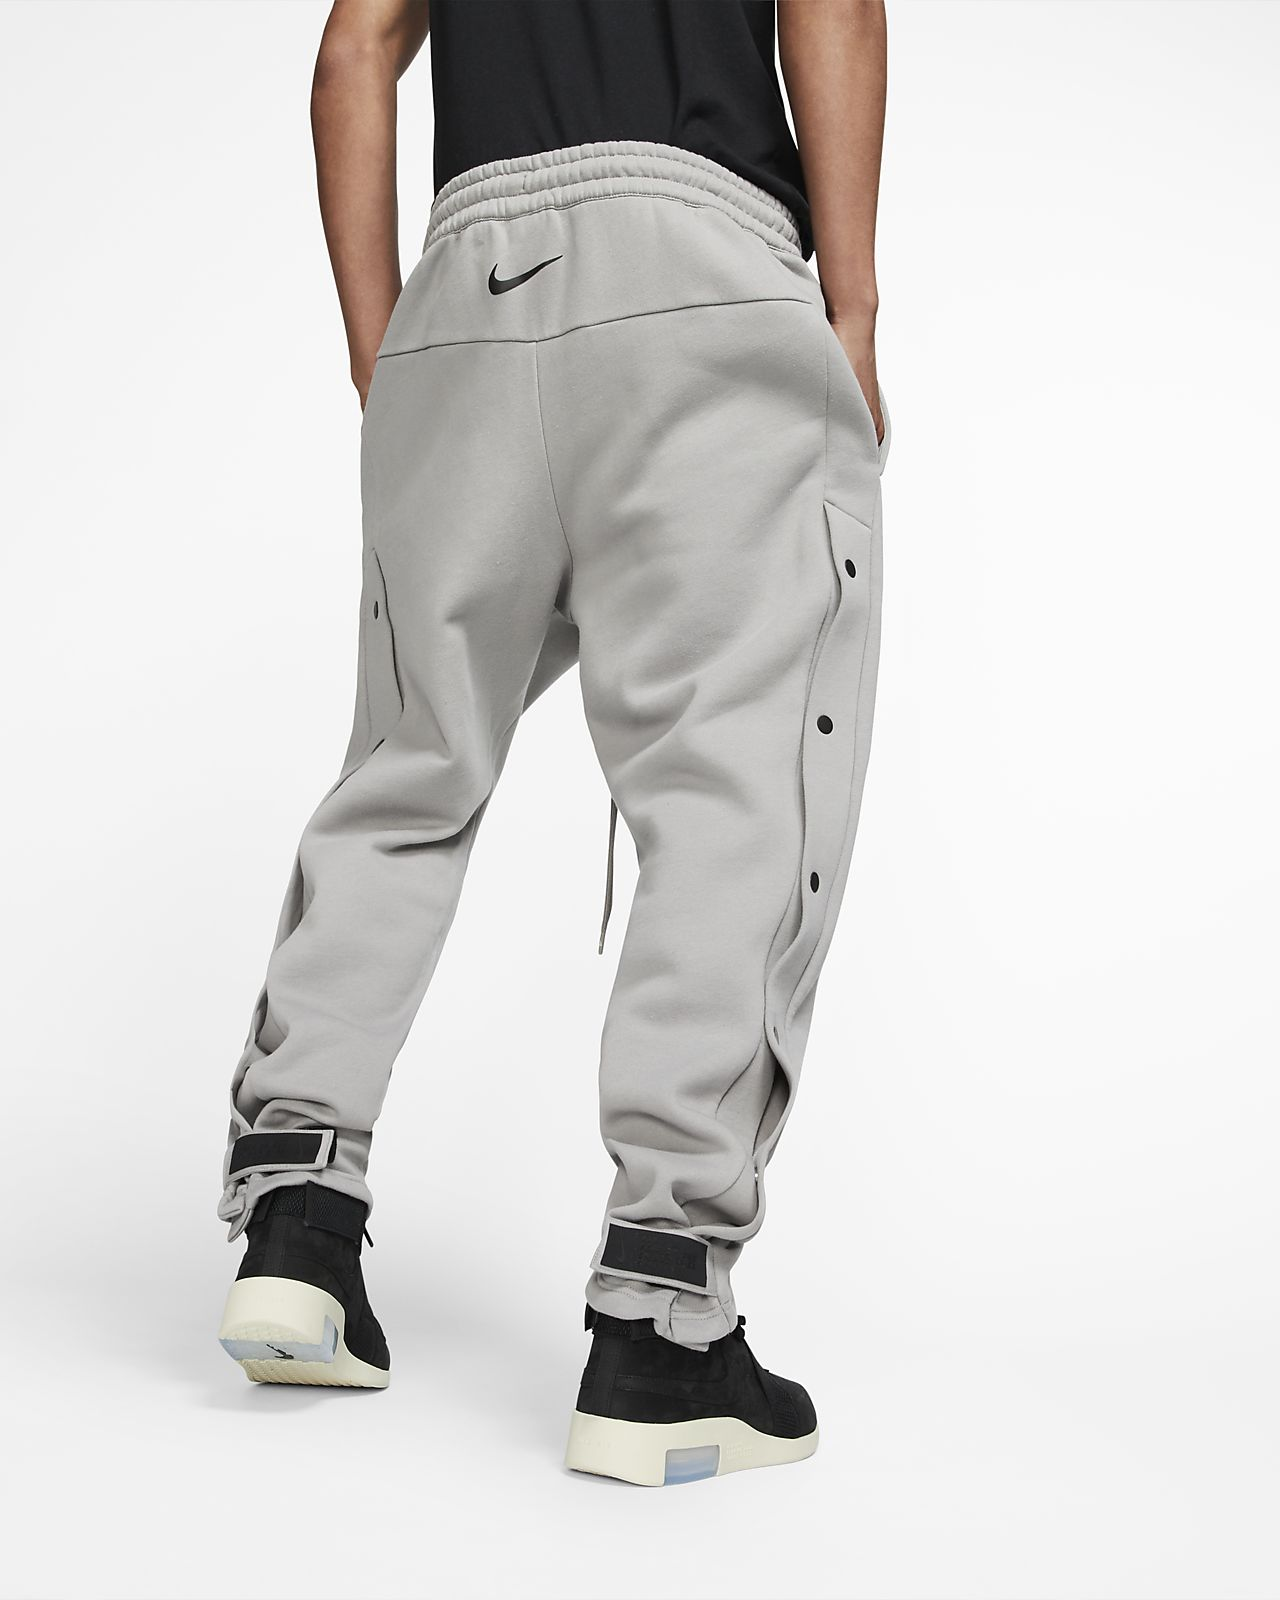 72c6ddeda Nike x Fear of God Men's Warm-Up Pants. Nike.com